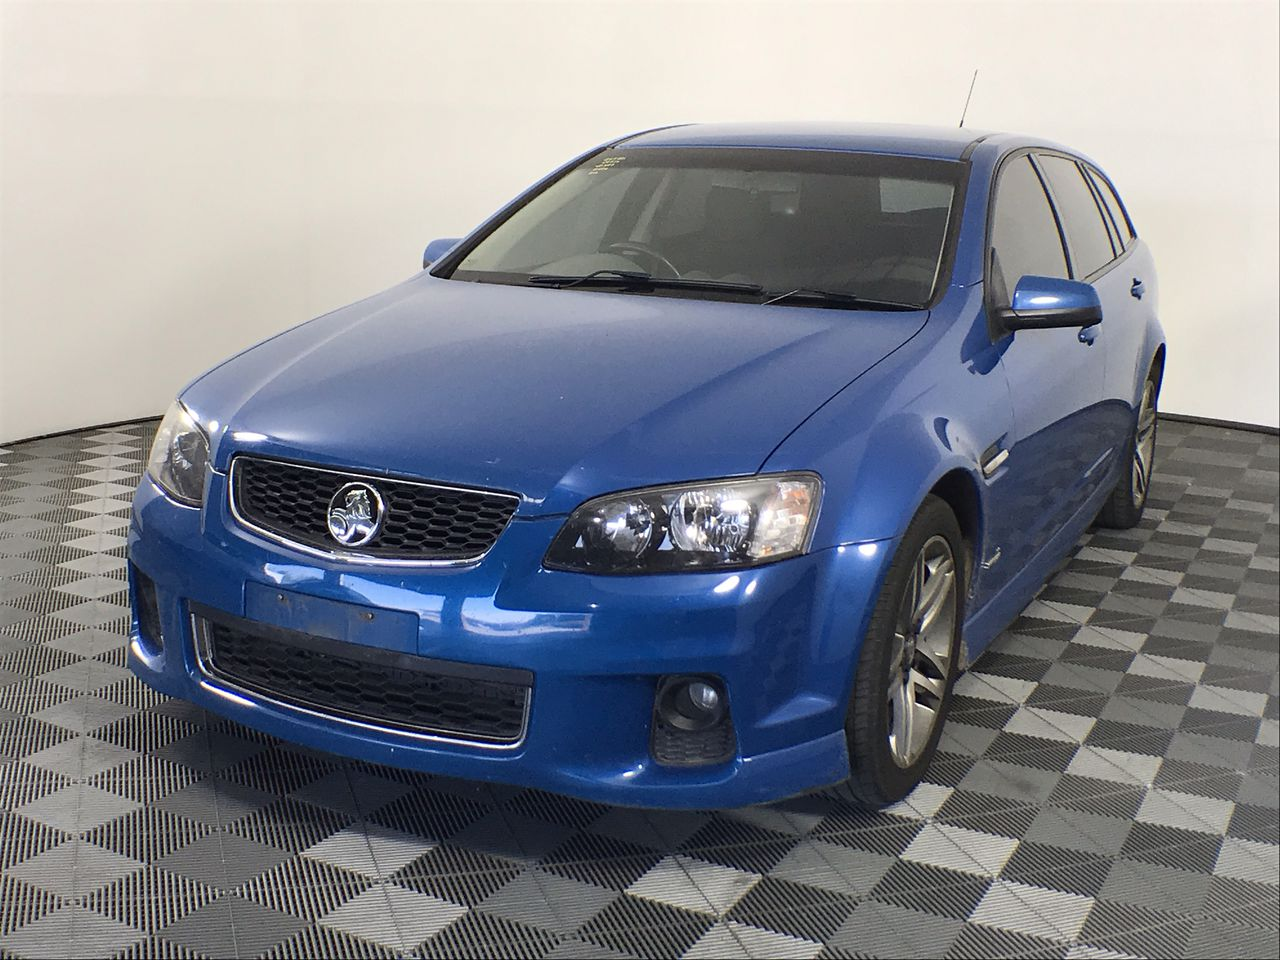 2013 Holden Sportwagon SV6 Z-SERIES VE II Automatic Wagon